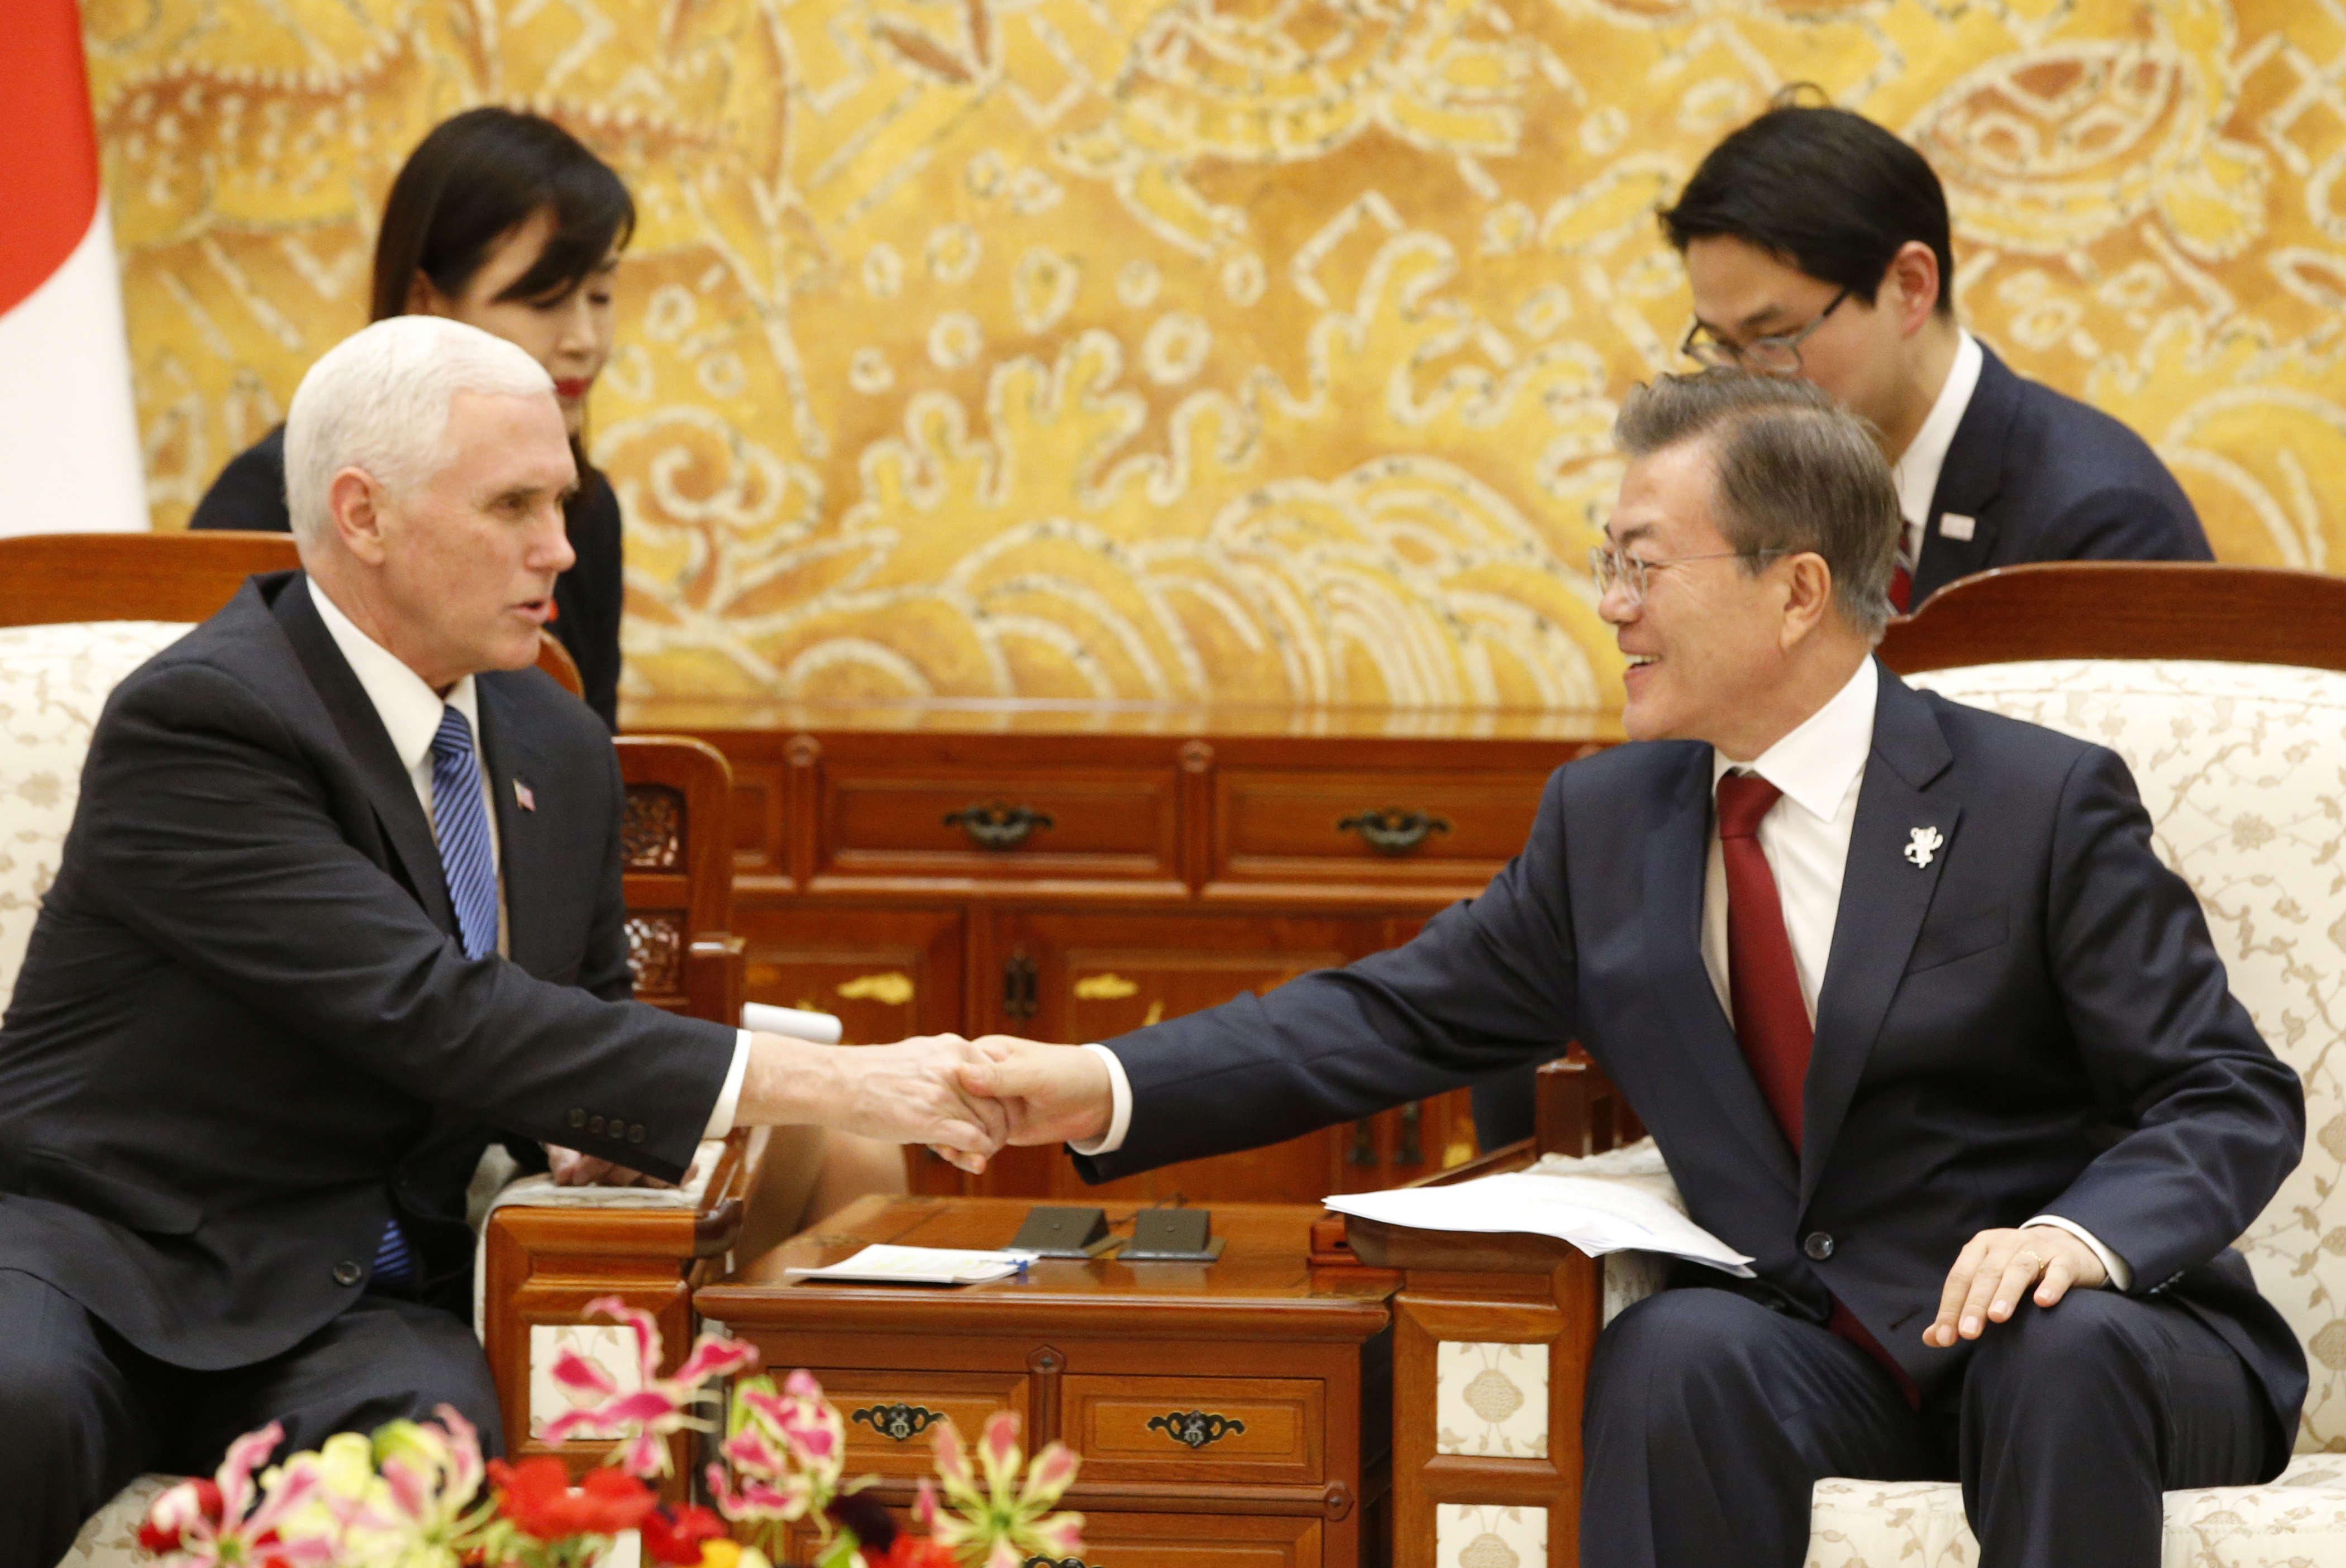 U.S. Vice President Mike Pence shakes hands with South Korean President Moon Jae-in after their meeting at the presidential office in Seoul, South Korea, Feb. 8, 2018.